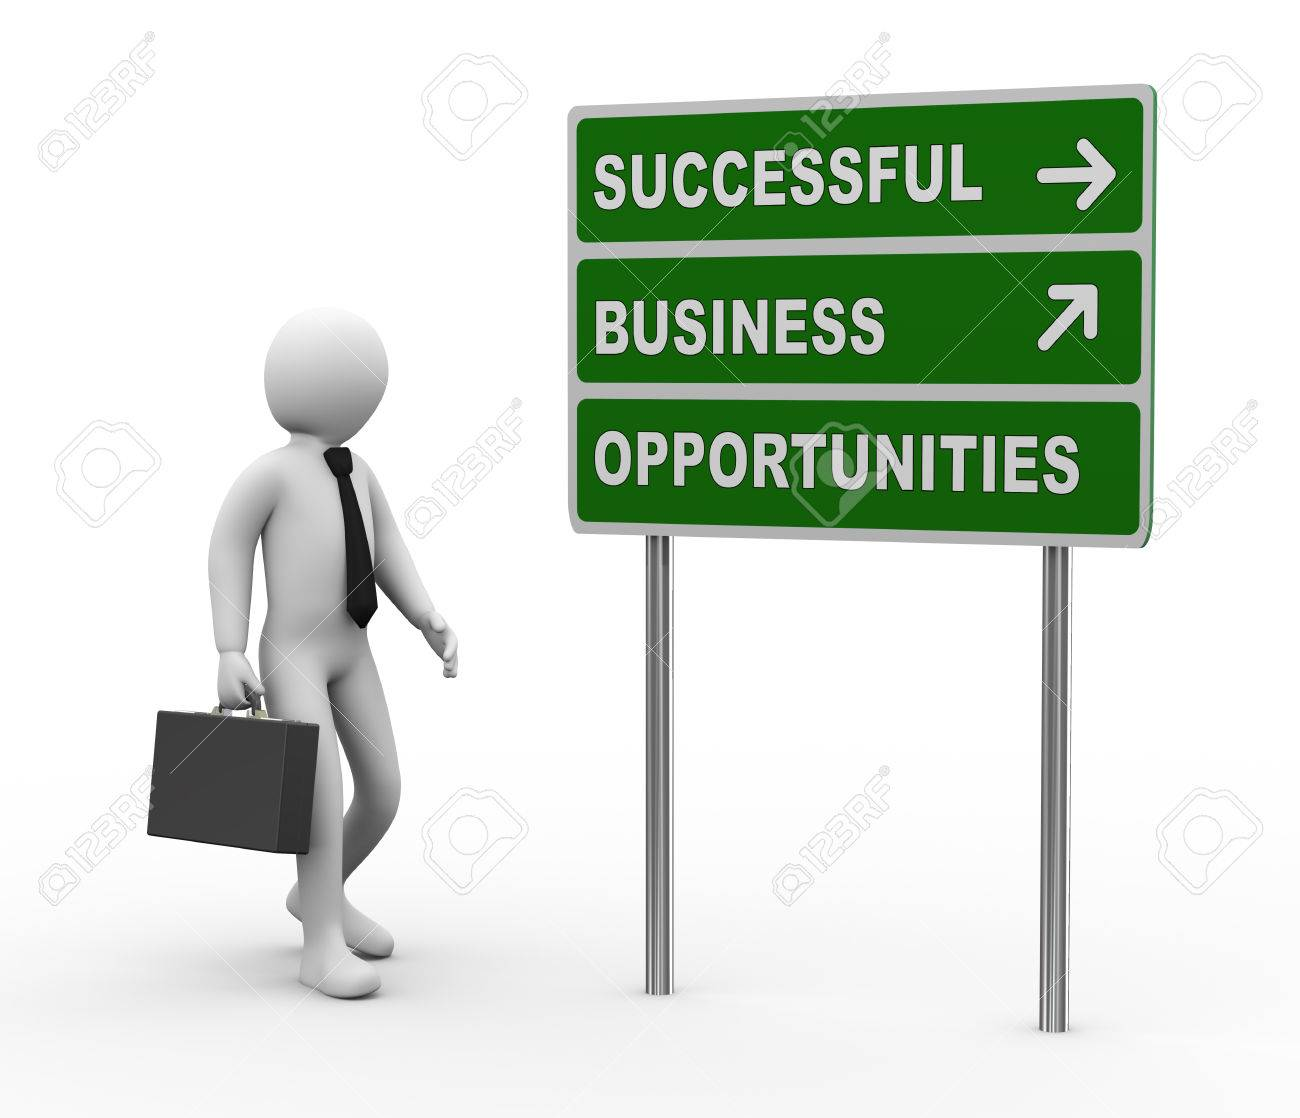 3d illustration of man and green roadsign of successful business opportunities . 3d rendering of human people character. Stock Illustration - 22275784